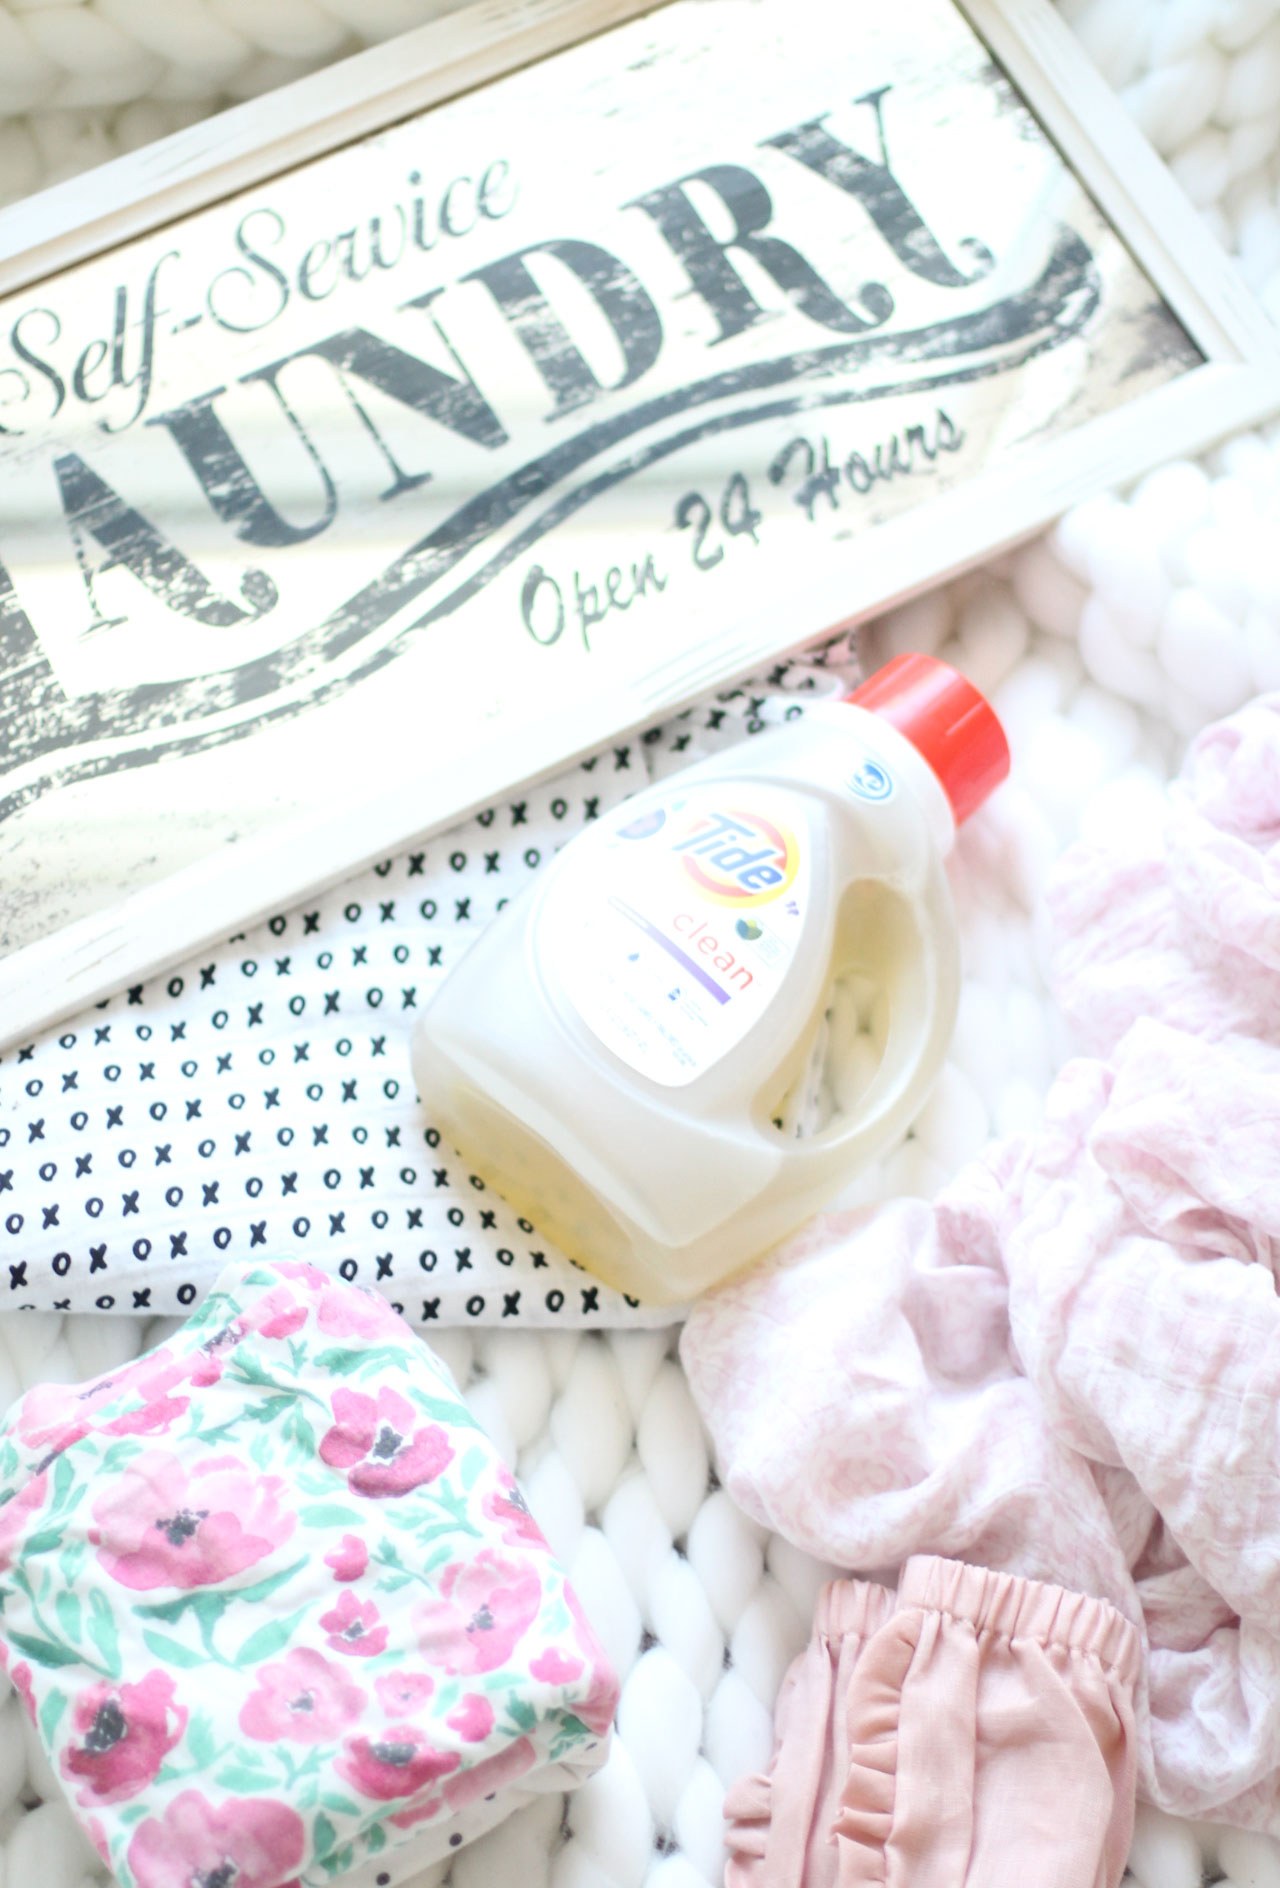 Lifestyle blogger Lexi of Glitter, Inc. shares how to stay on top of the family laundry with 10 simple tips ... so you won't loathe laundry day. | glitterinc.com | @glitterinc - 10 Tips for Staying on Top of Family Laundry by popular North Carolina lifestyle blogger Glitter, Inc.